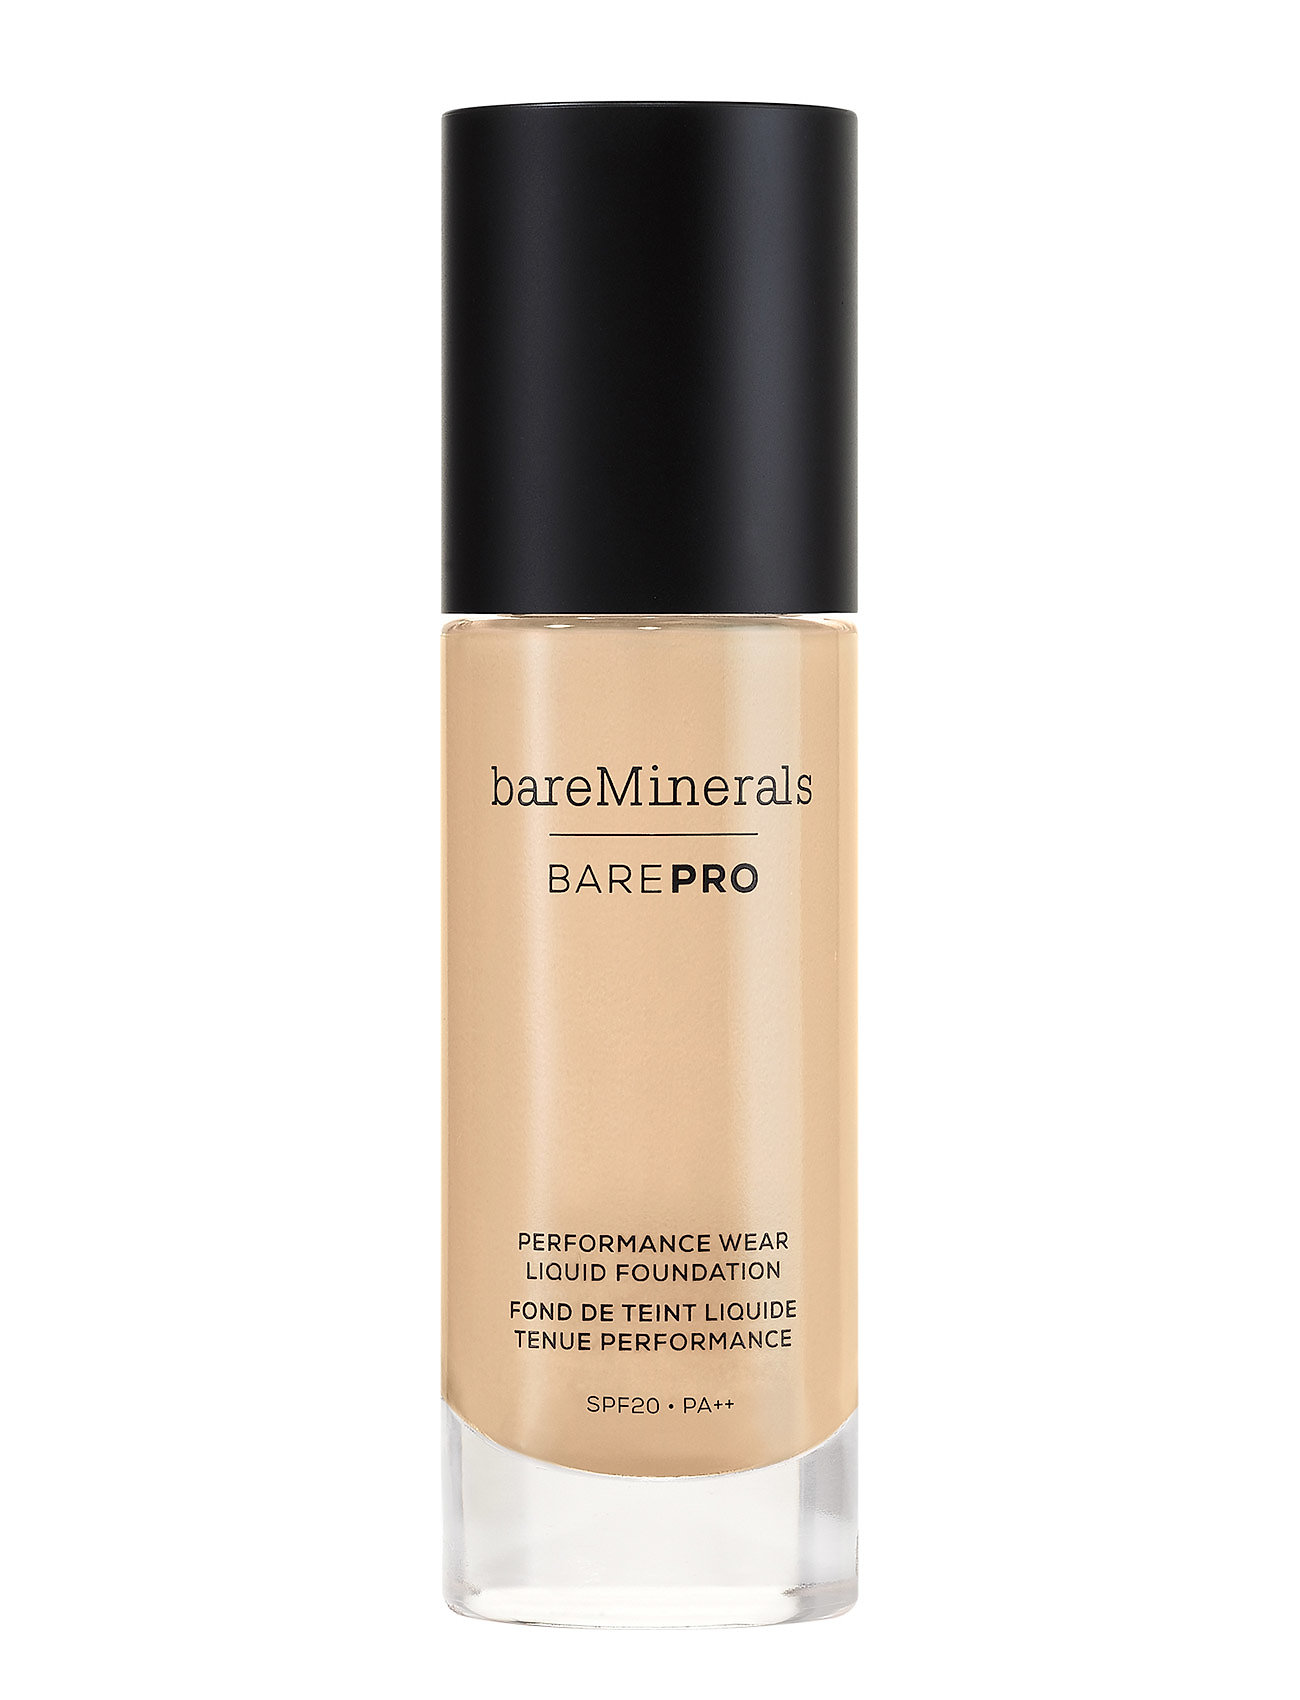 Image of Barepro Performance Wear Liquid Foundation Spf 20 Foundation Makeup BareMinerals (3067521473)